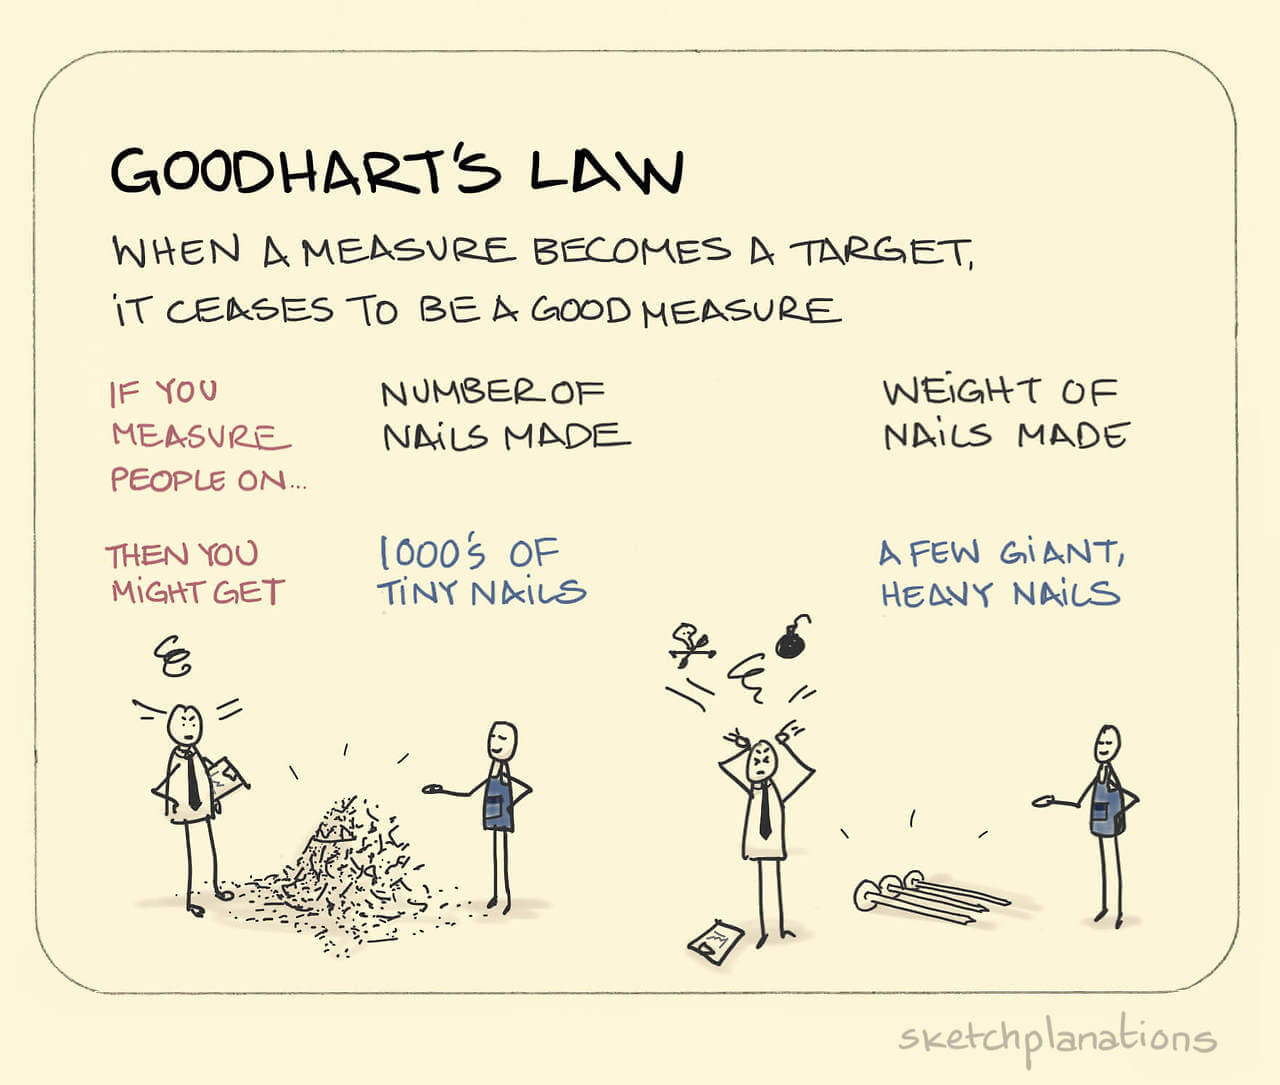 Sketchplanations - Goodhart's Law (by Jono Hey)